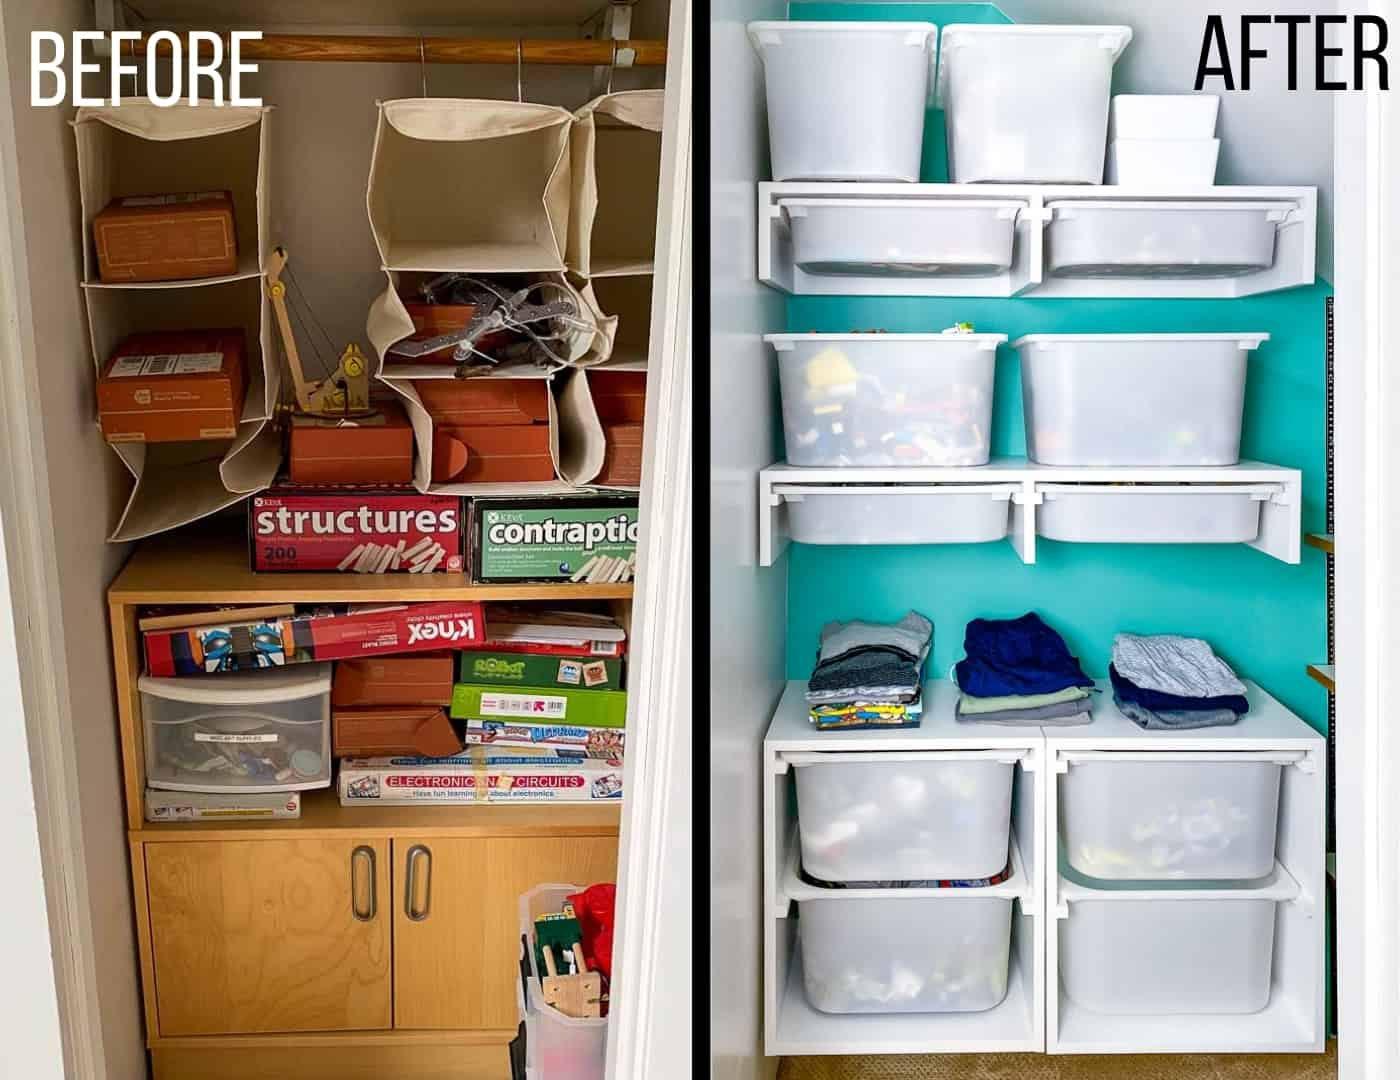 DIY closet organizer before and after